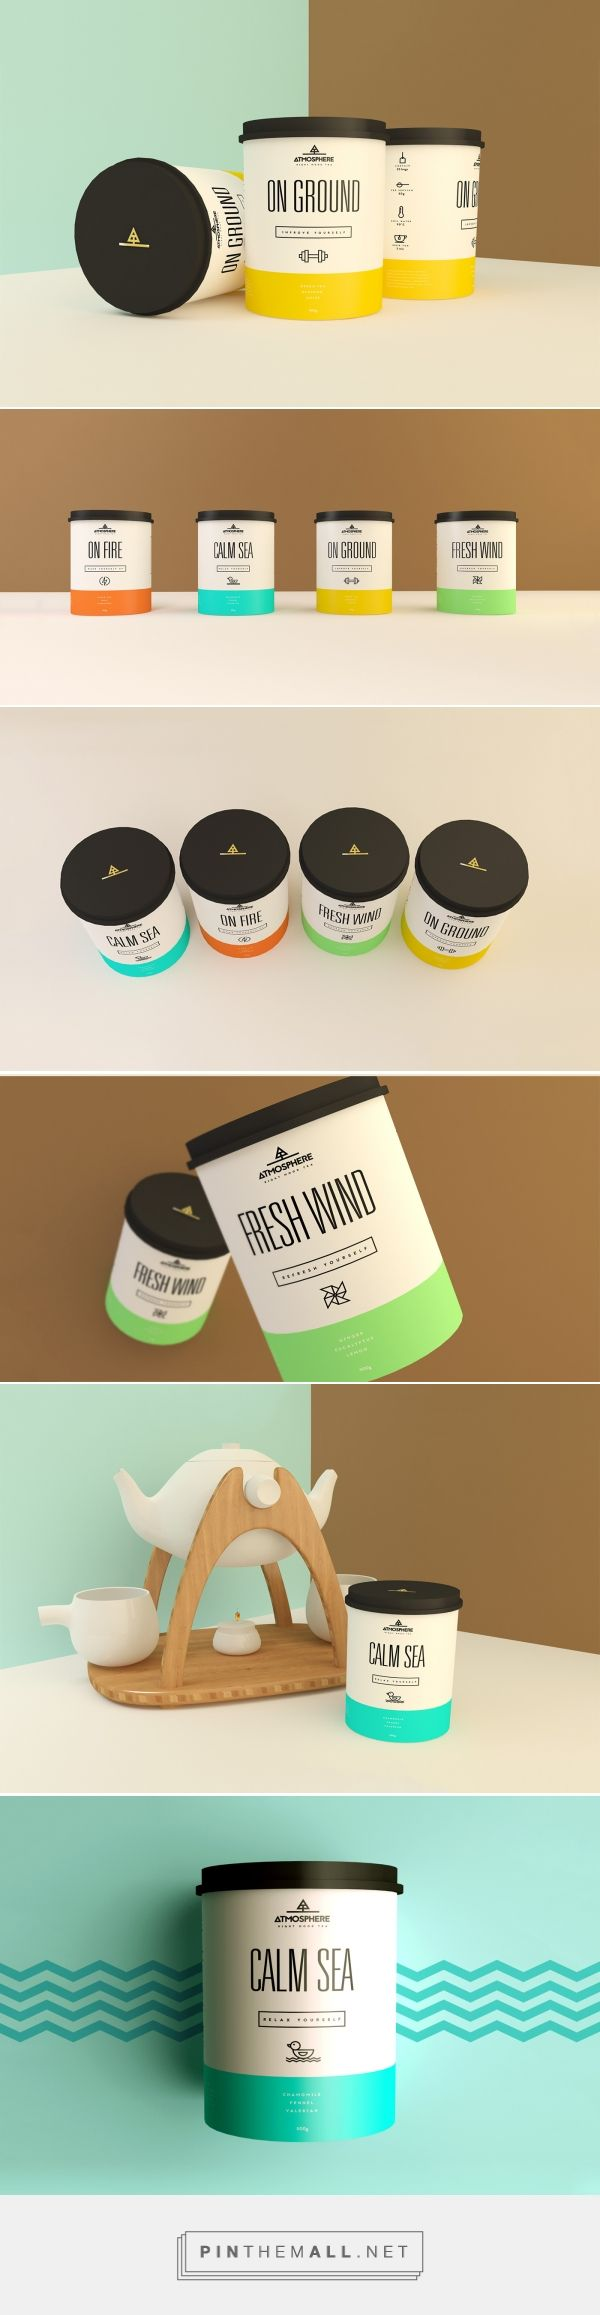 Atmosphere is a new brand that wants to bring a new concept for teas. Designed by Paloma Martins